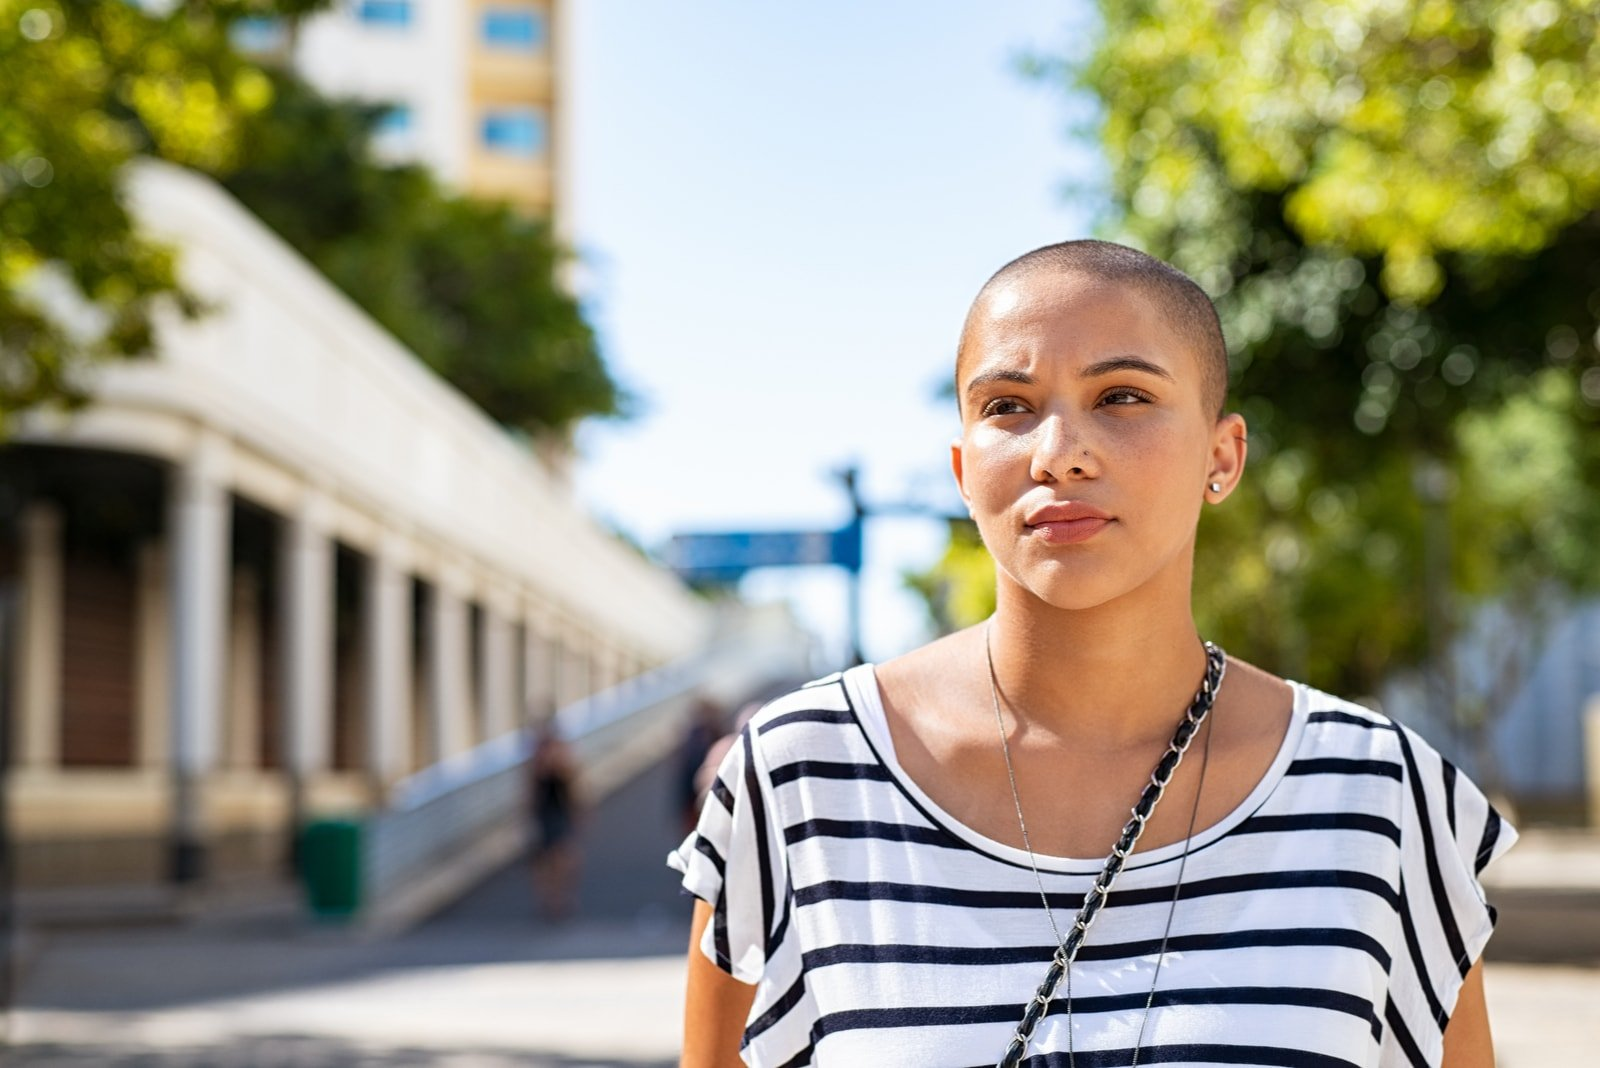 young woman with bald hair lost in deep thoughts